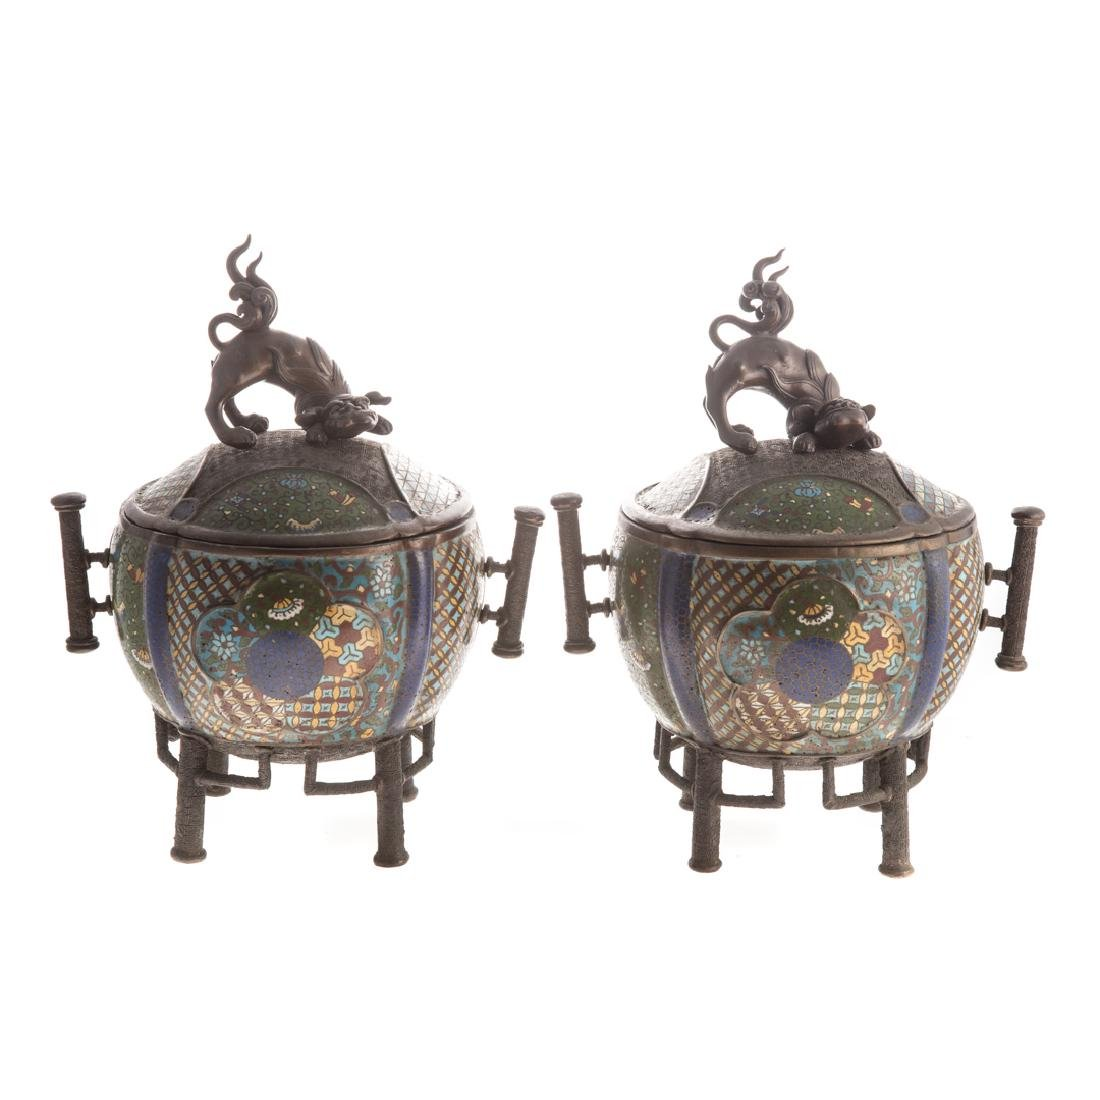 Pair of Chinese bronze and cloisonne censors